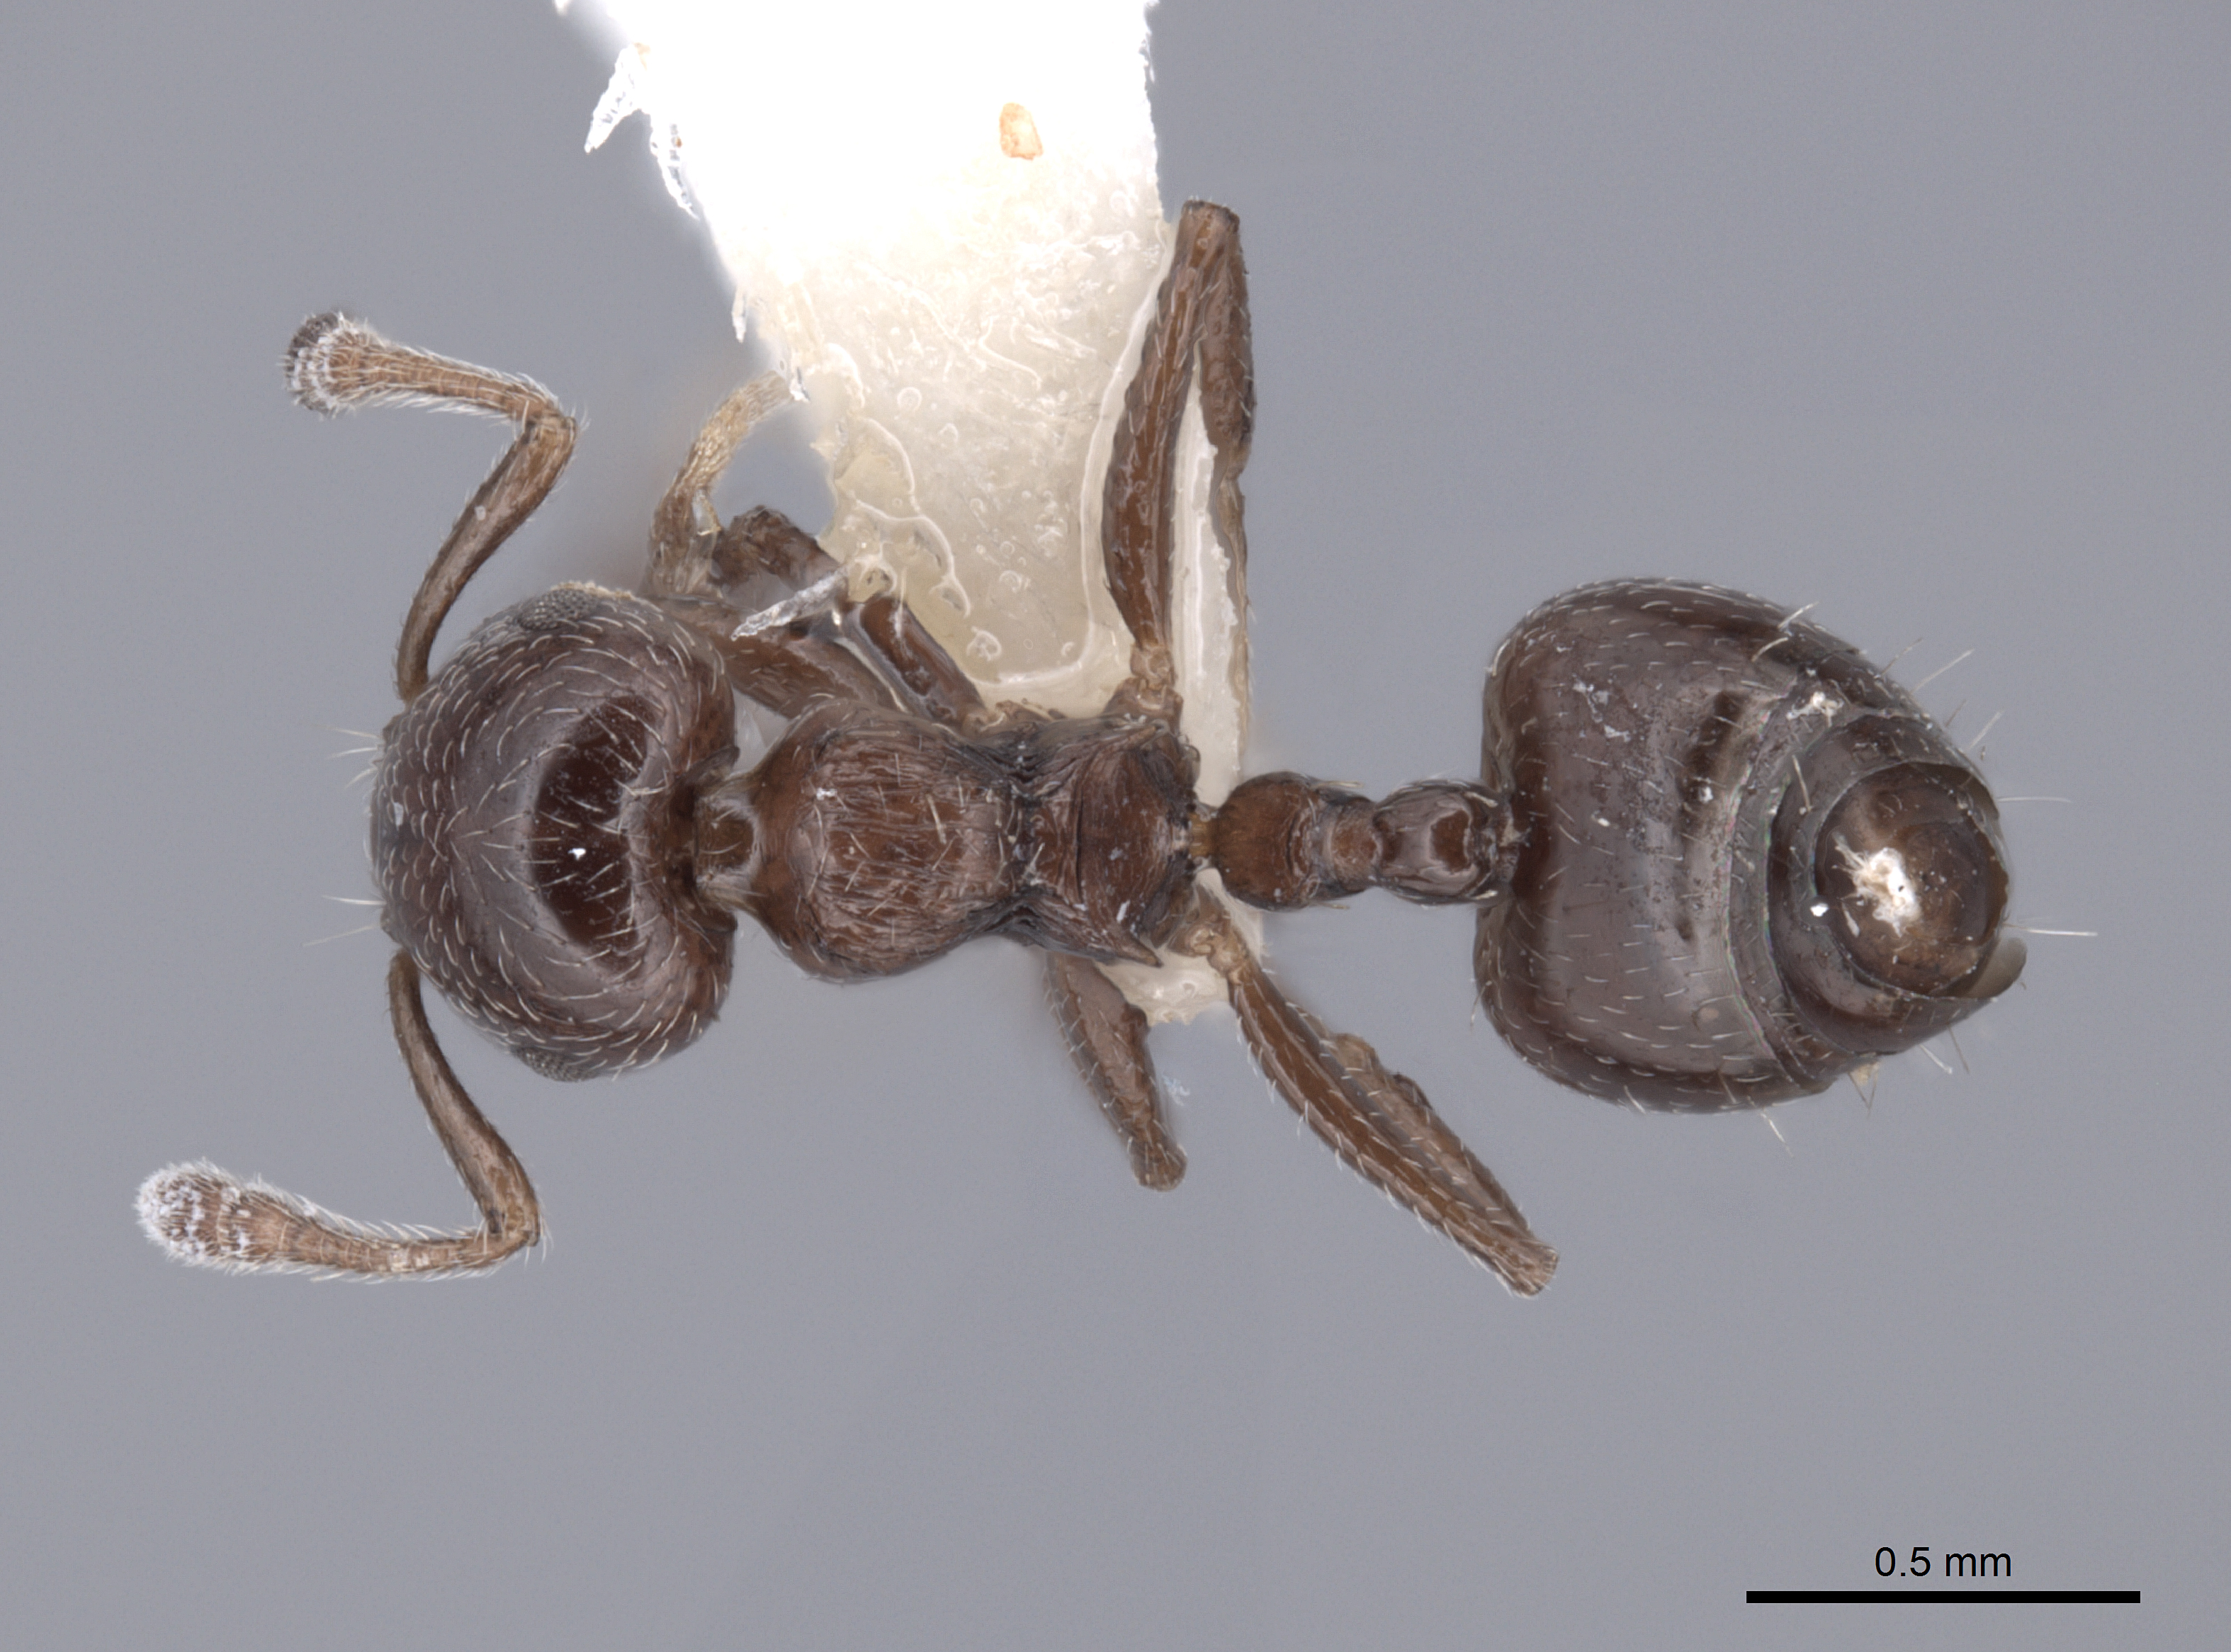 Image of Crematogaster erecta